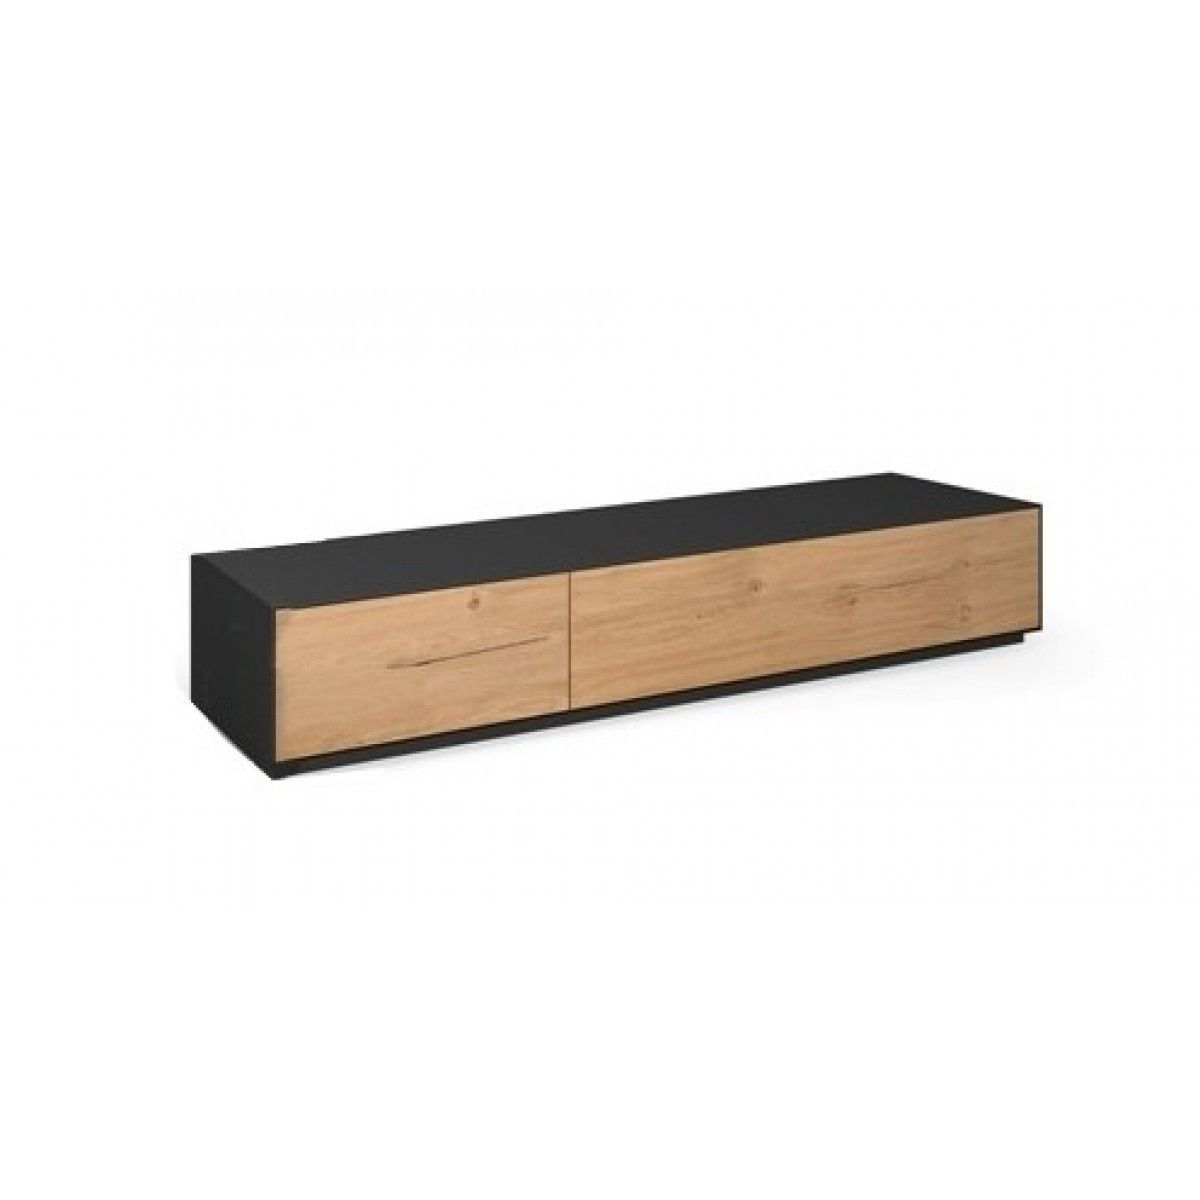 Tv Kast Dressoir Eiken.Tv Meubel Sokkel Dressoir Brooklyn Eiken Metaaal Br10 S2